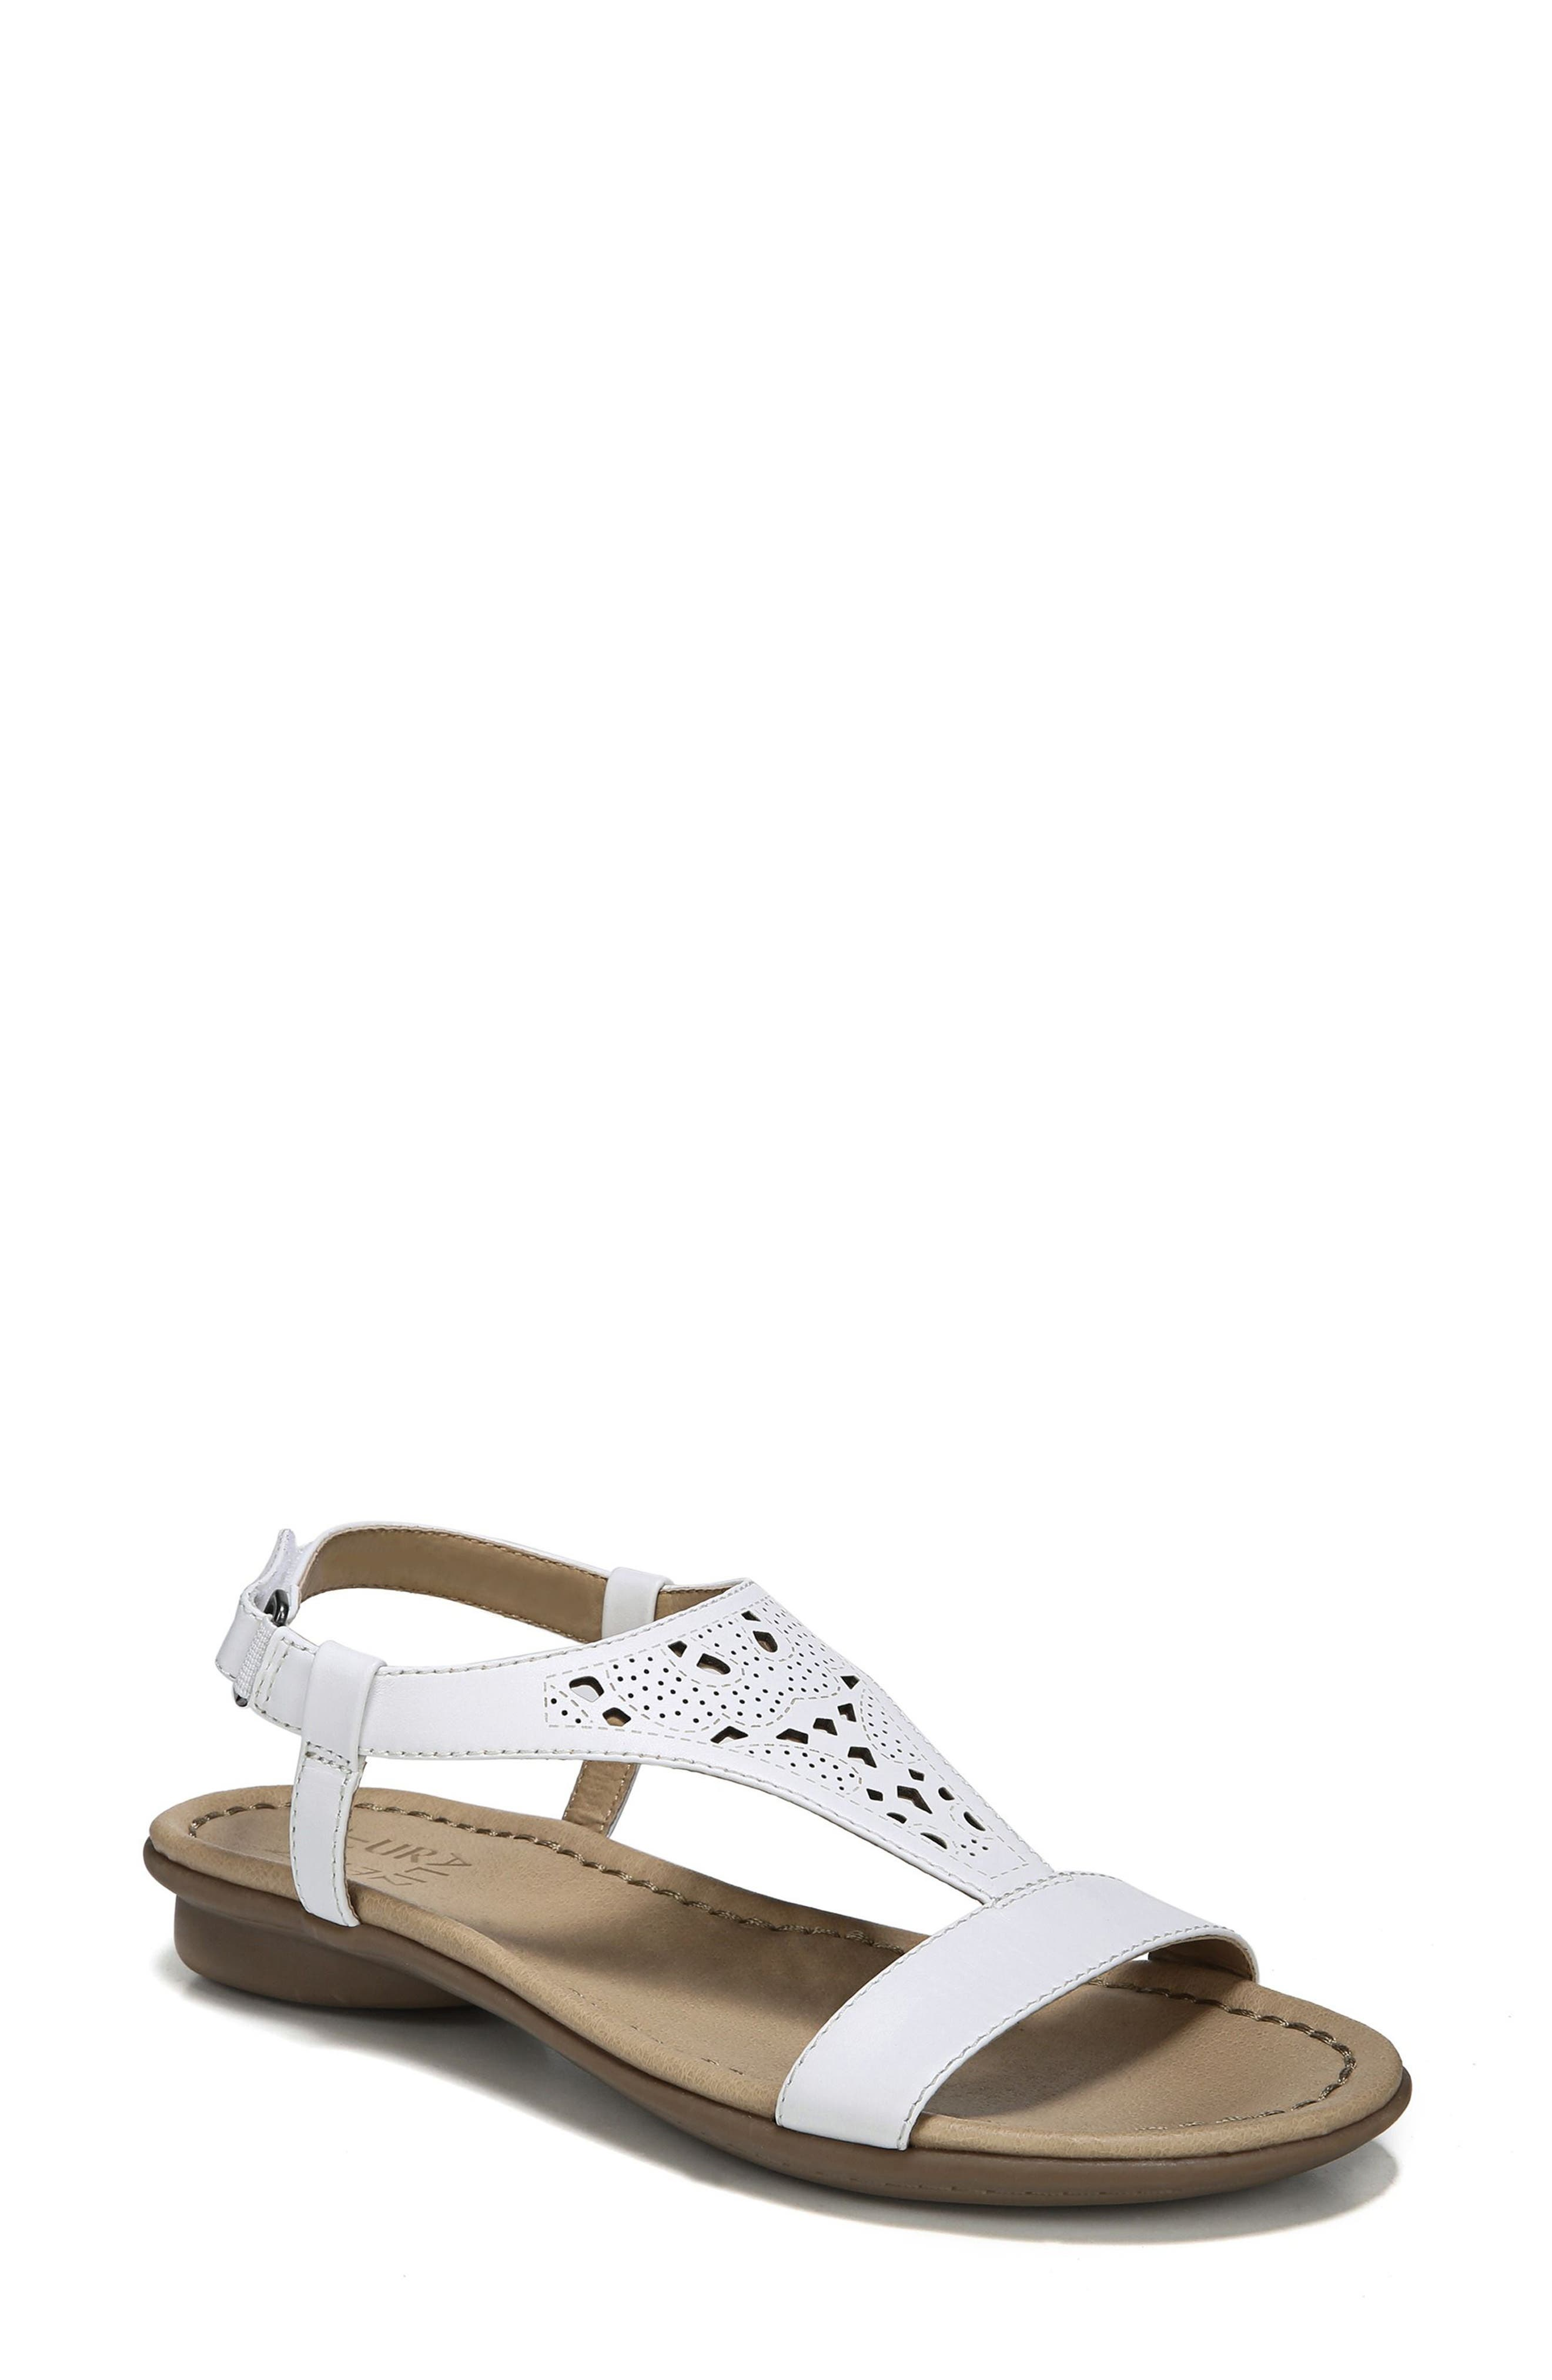 Windham Sandal,                         Main,                         color, White Leather